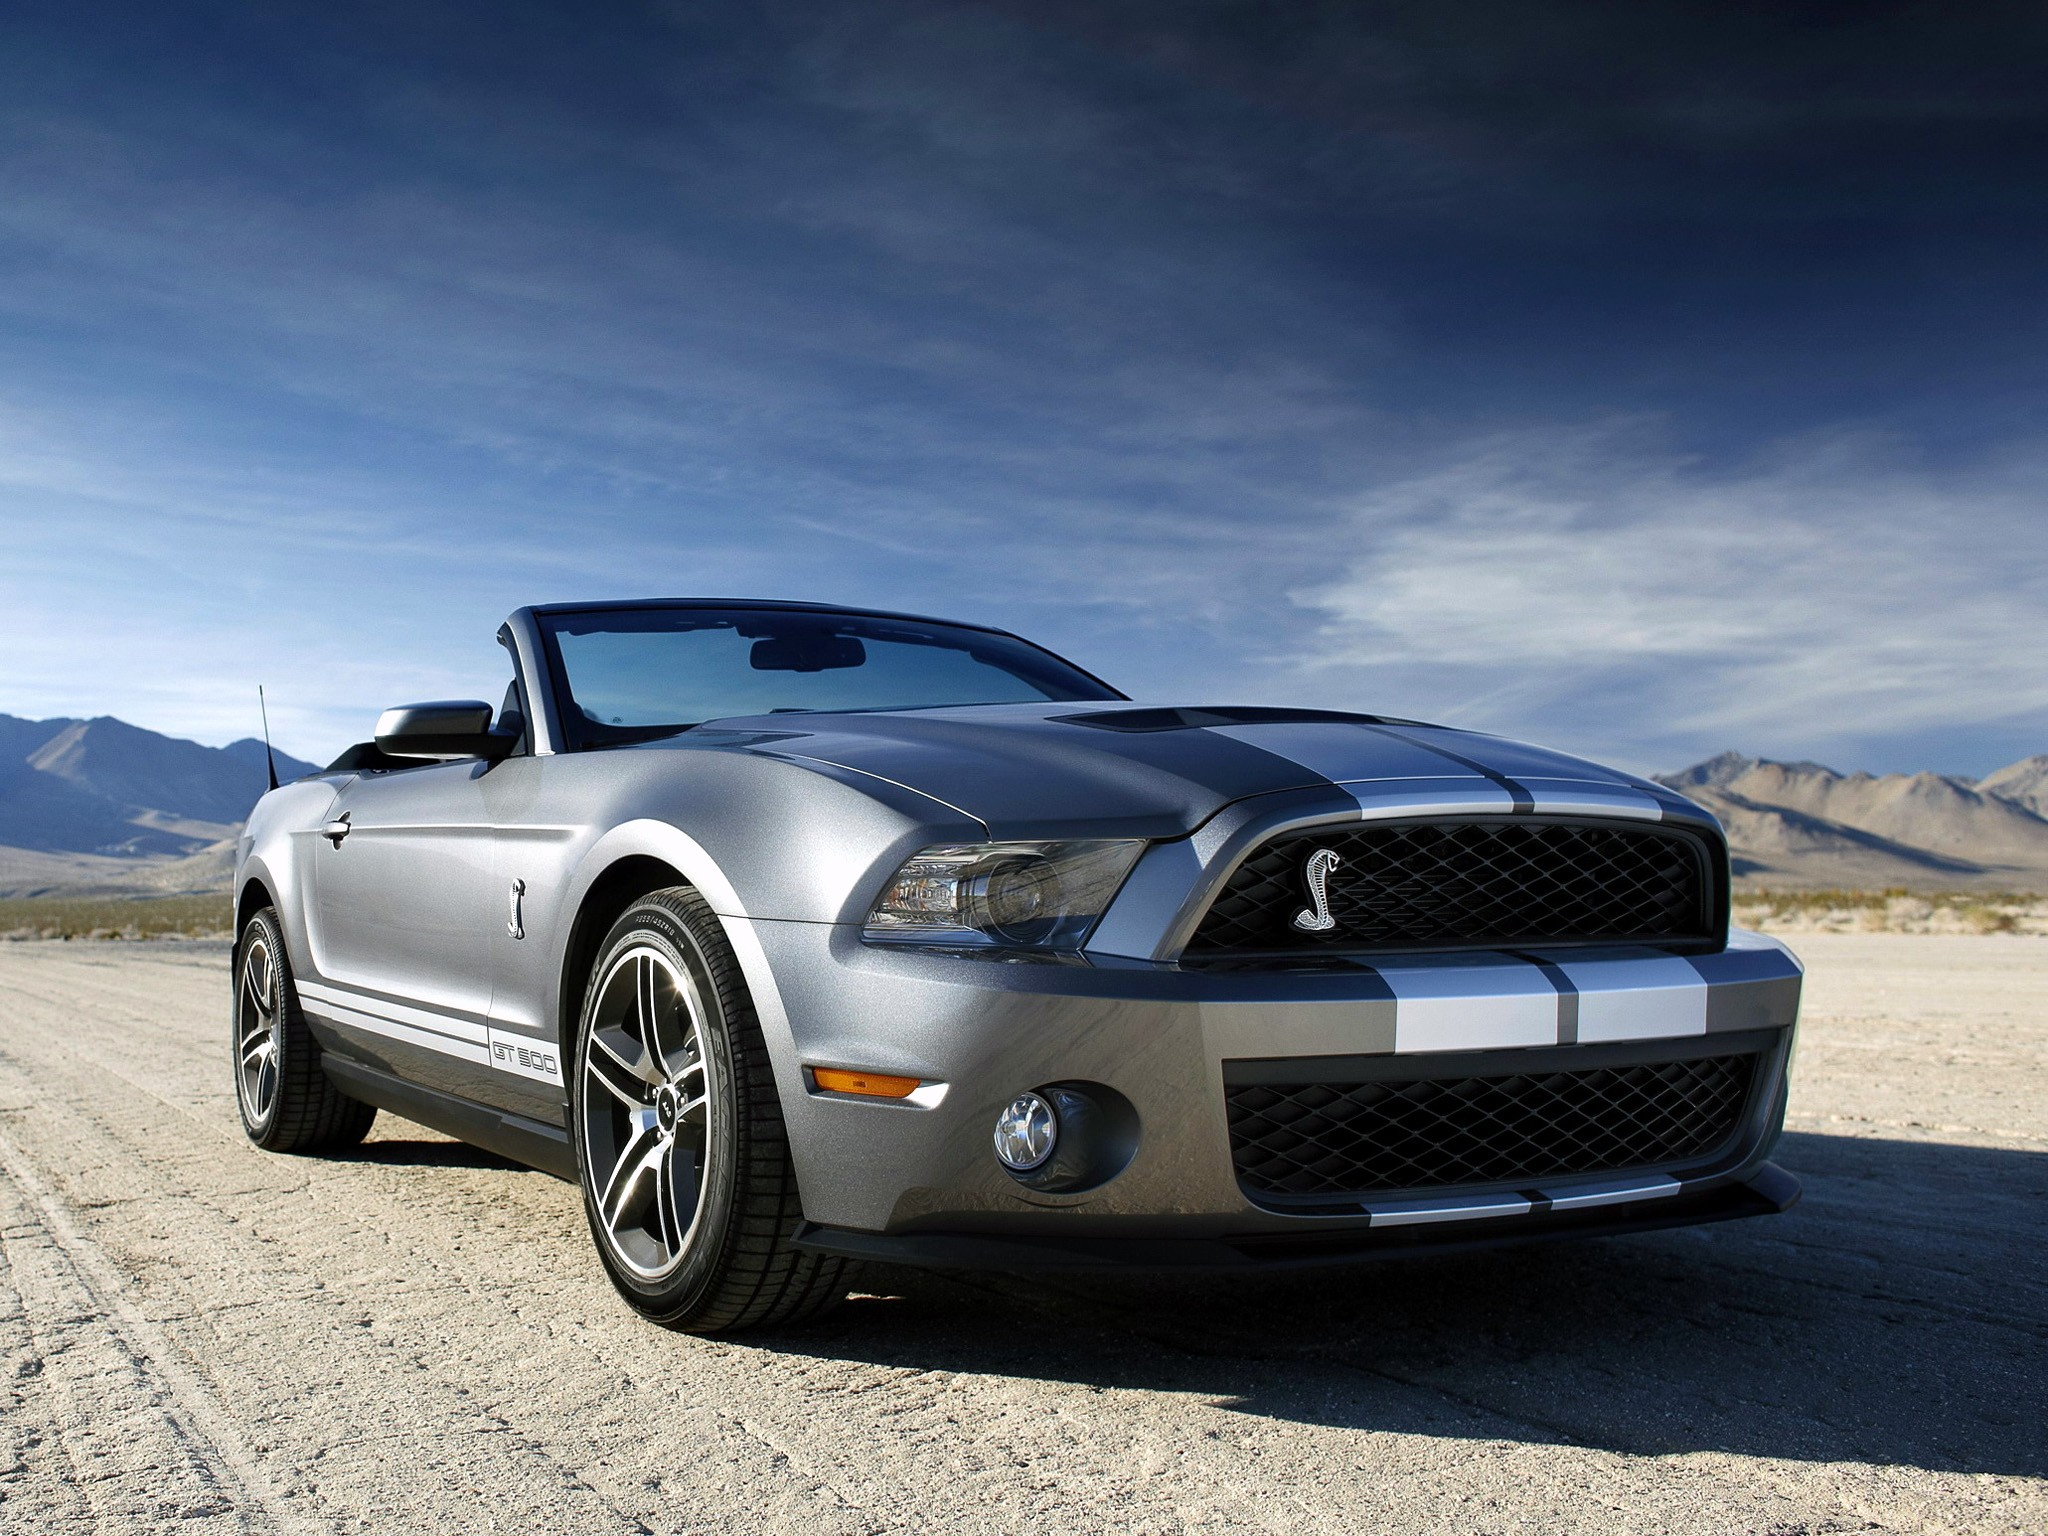 Ford Mustang Shelby Gt Convertible on Sterling V8 Engine